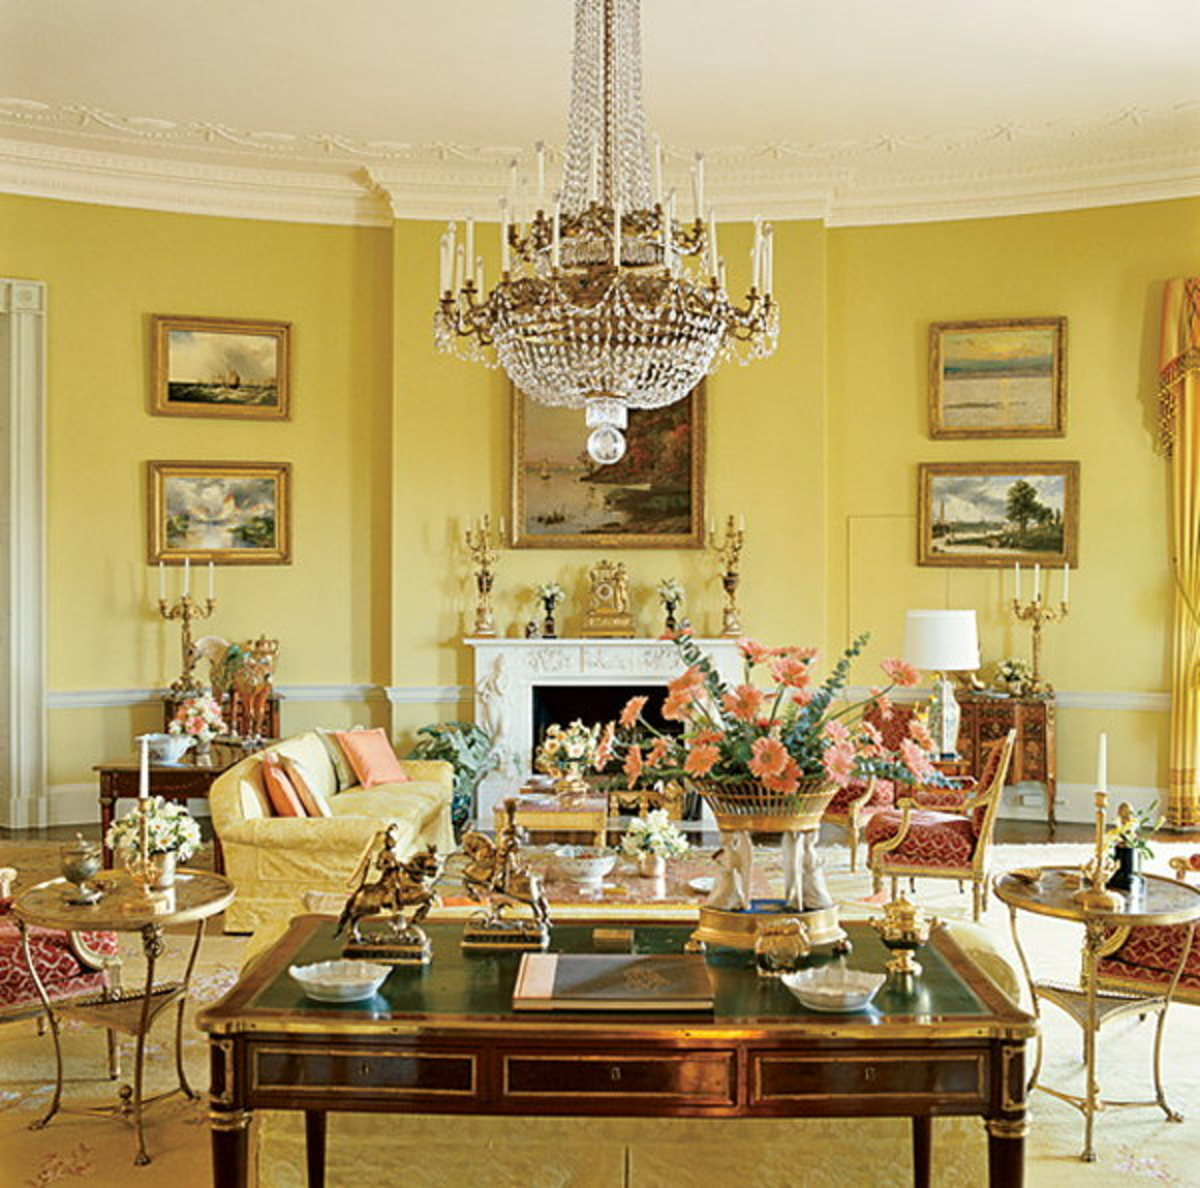 Yellow rooms keep things cheerful year-round.